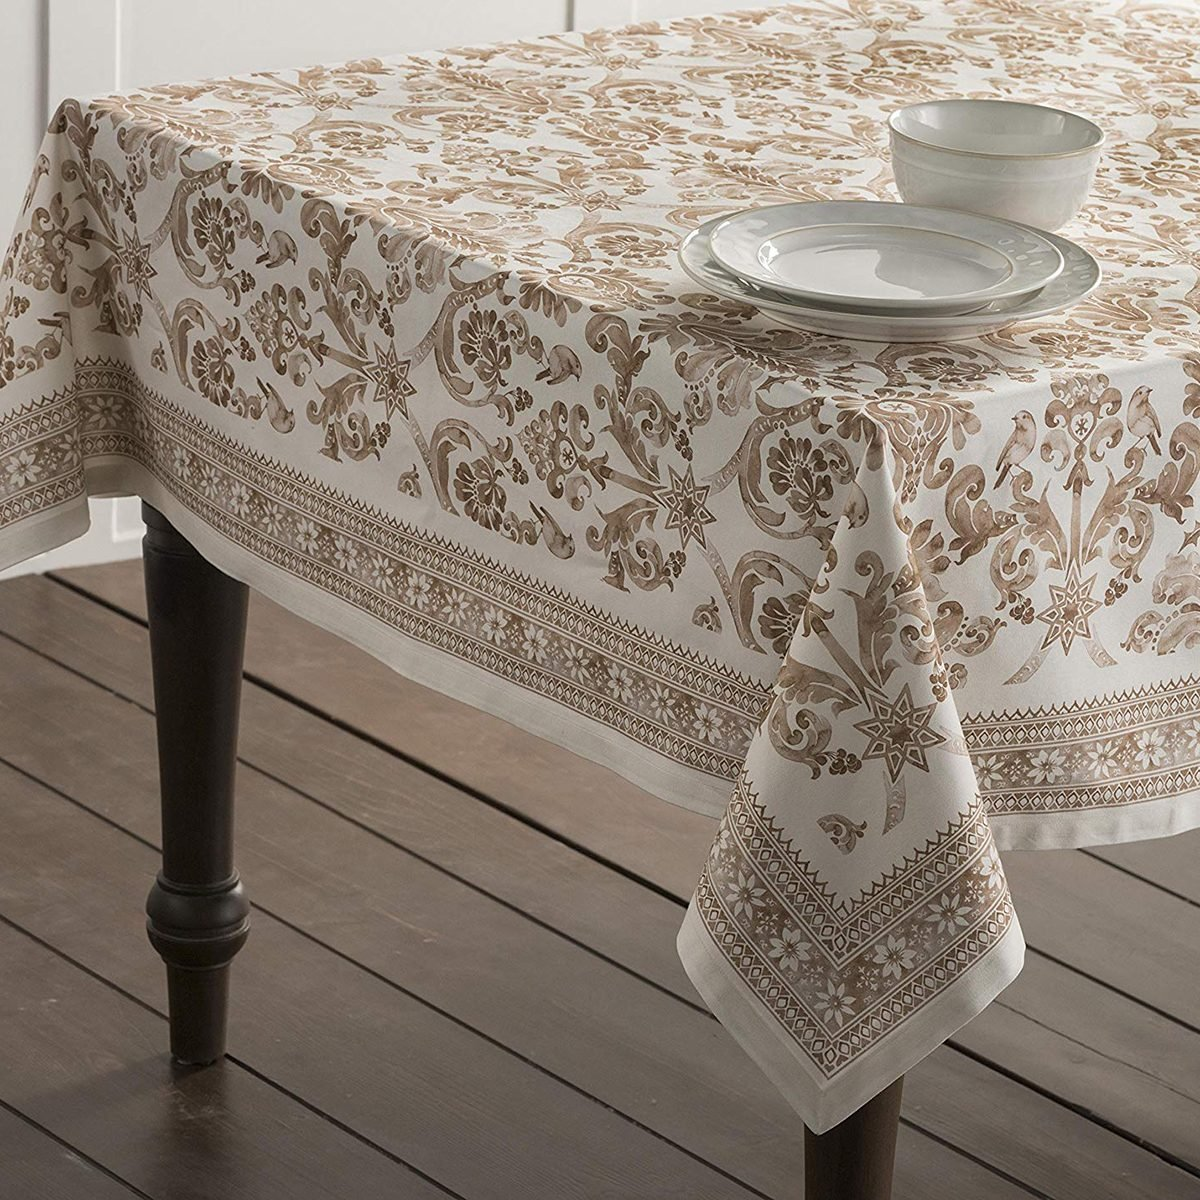 Maison d' Hermine Allure 100% Cotton Tablecloth 60 Inch by 108 Inch. Perfect for Thanksgiving and Christmas